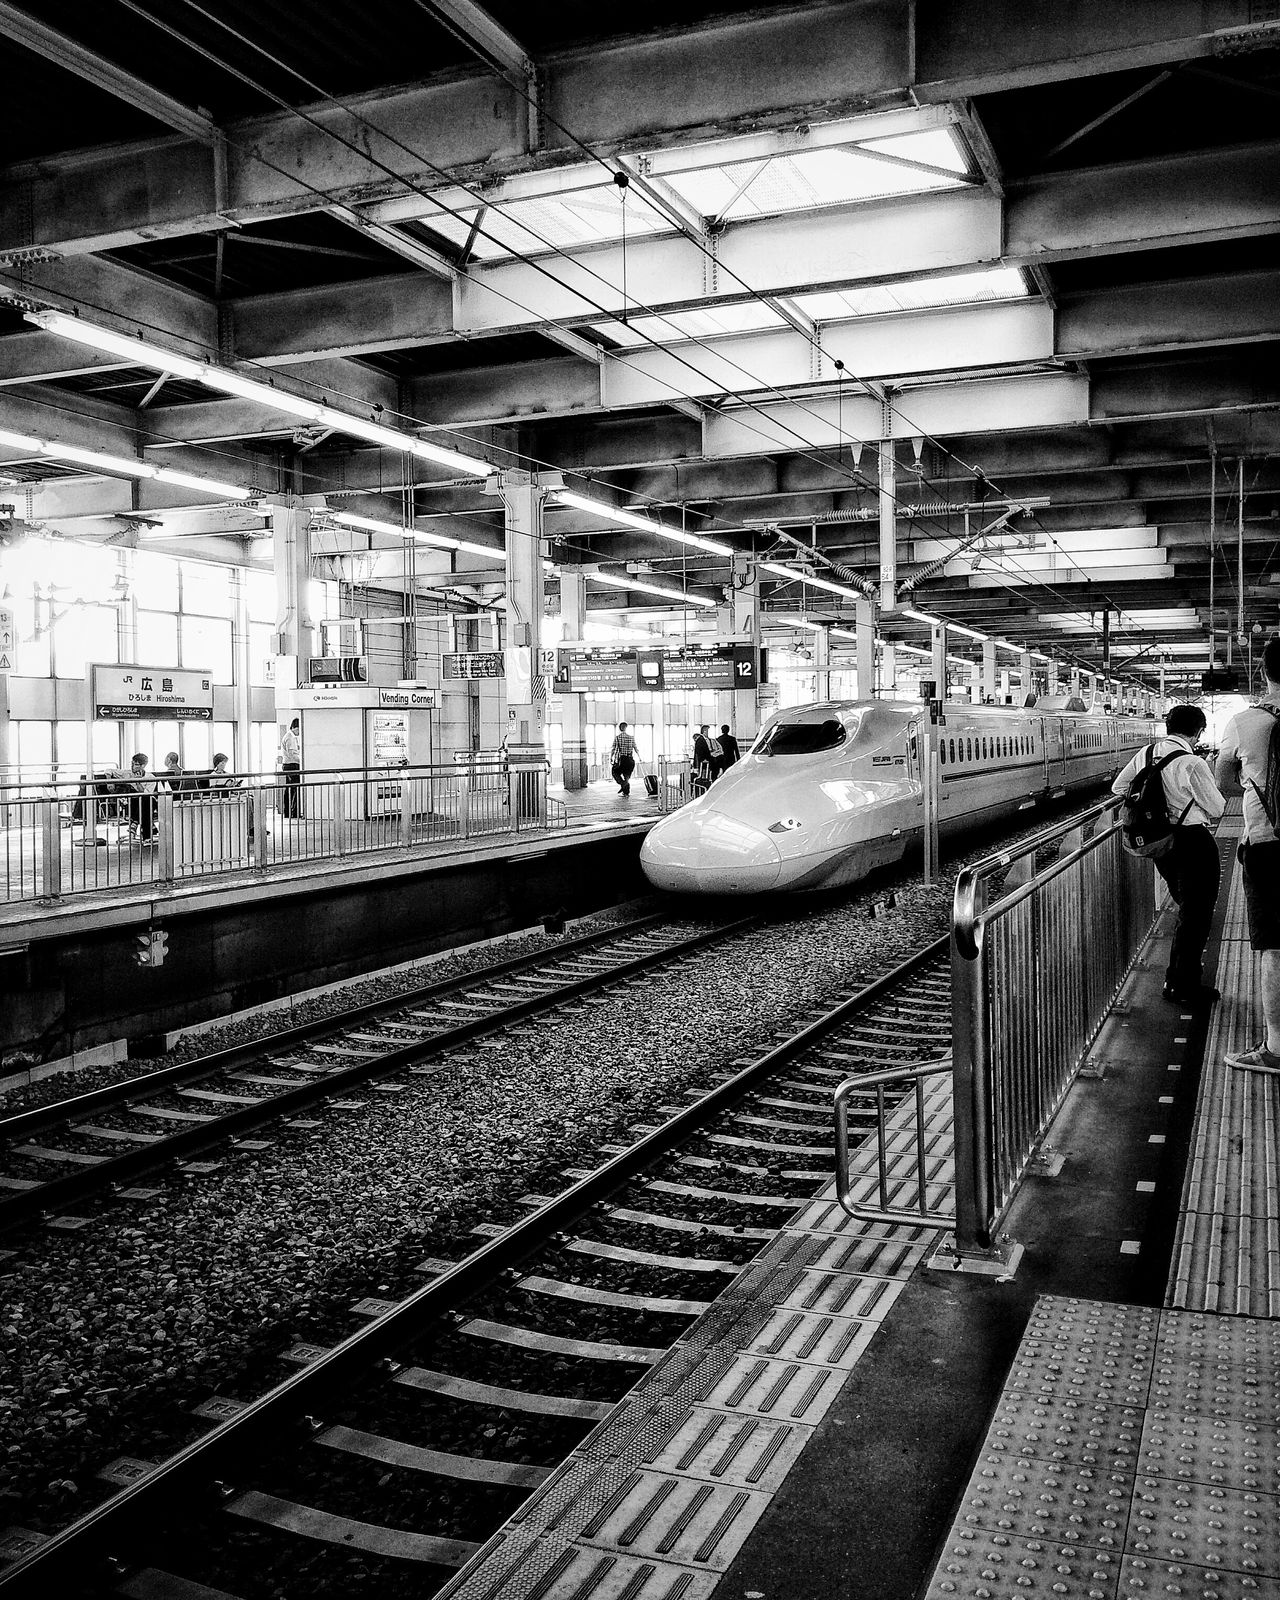 Bullet train. Transportation Railroad Track Railroad Station Railroad Station Platform Indoors  Day Architecture Travel Destinations Mobile Photography Mobilephotography Youmobile Shootermag NEM Street